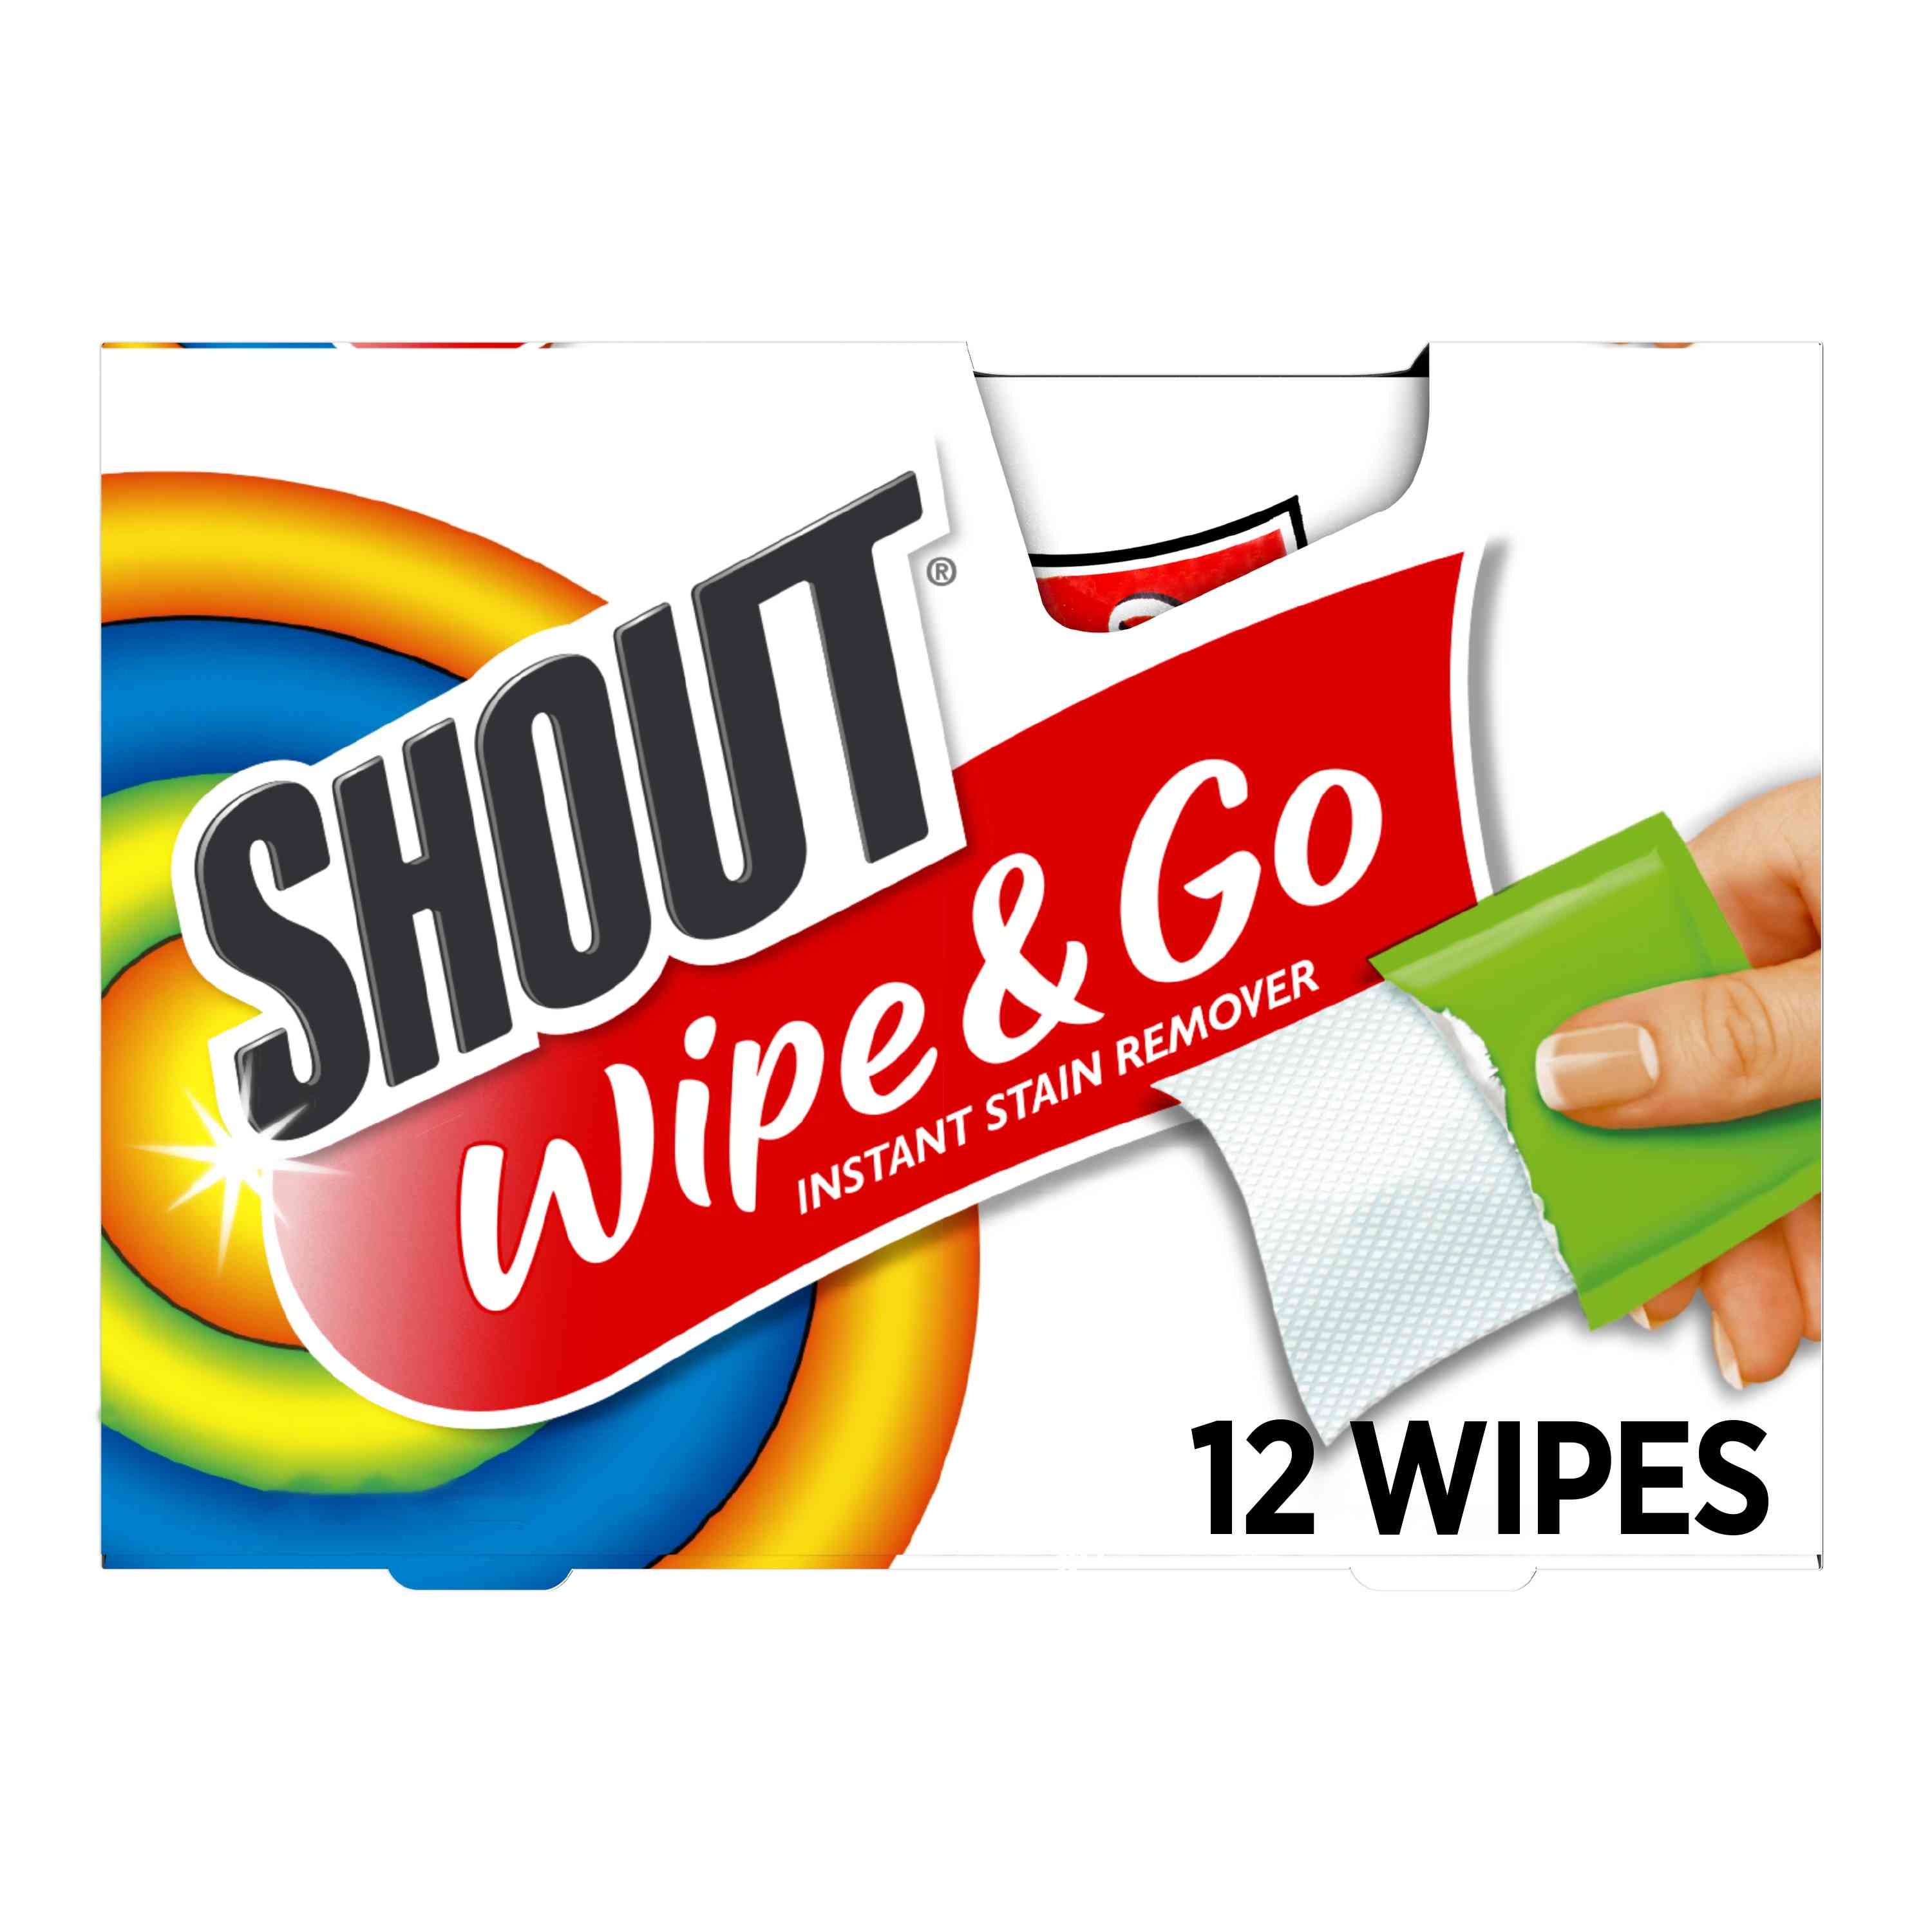 SC Johnson Shout Instant Stain Remover Wipes